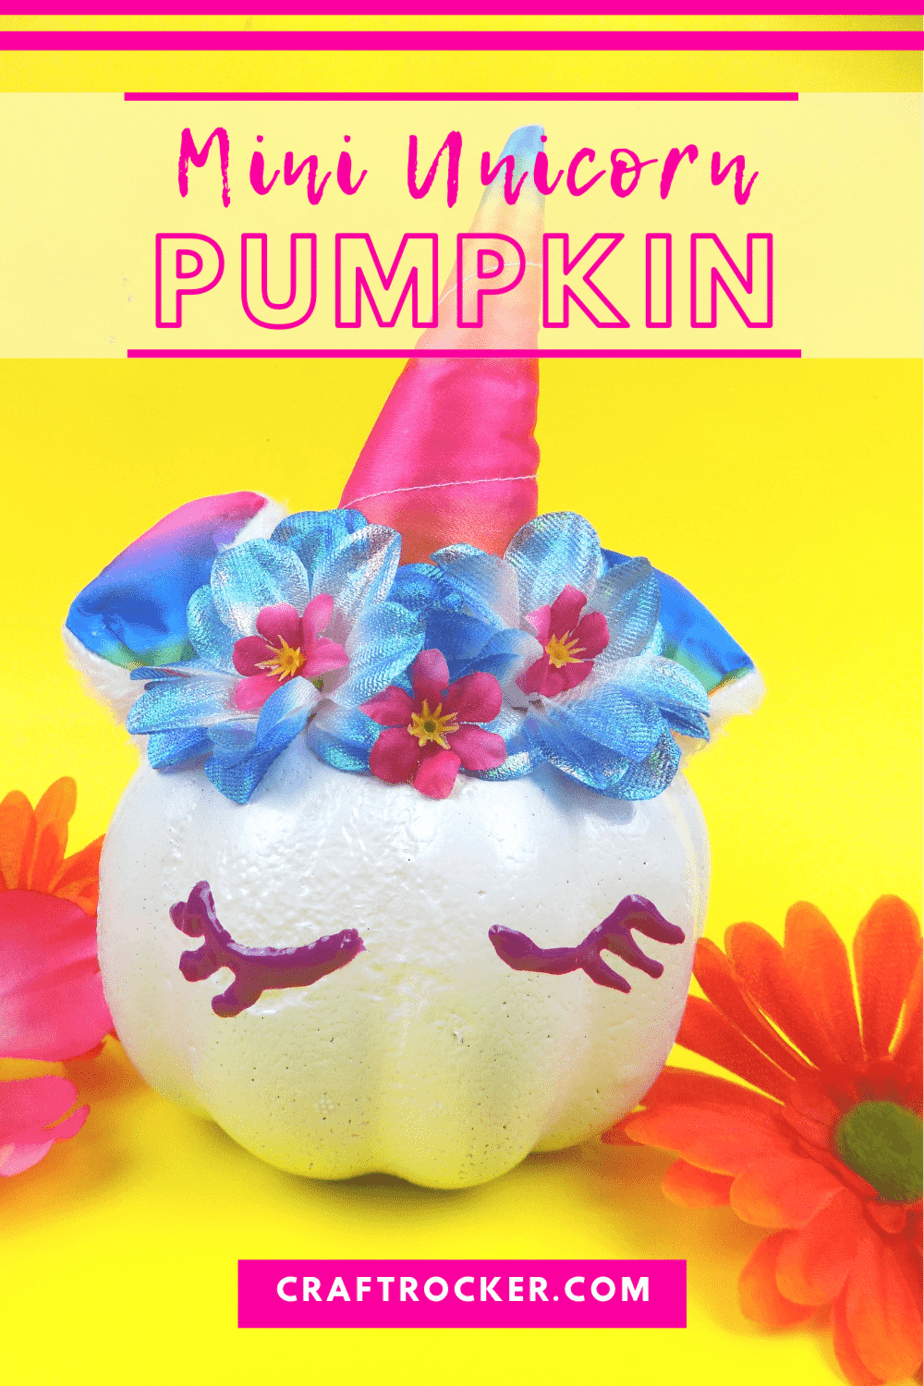 Rainbow Unicorn Pumpkin with text overlay - Mini Unicorn Pumpkin - Craft Rocker